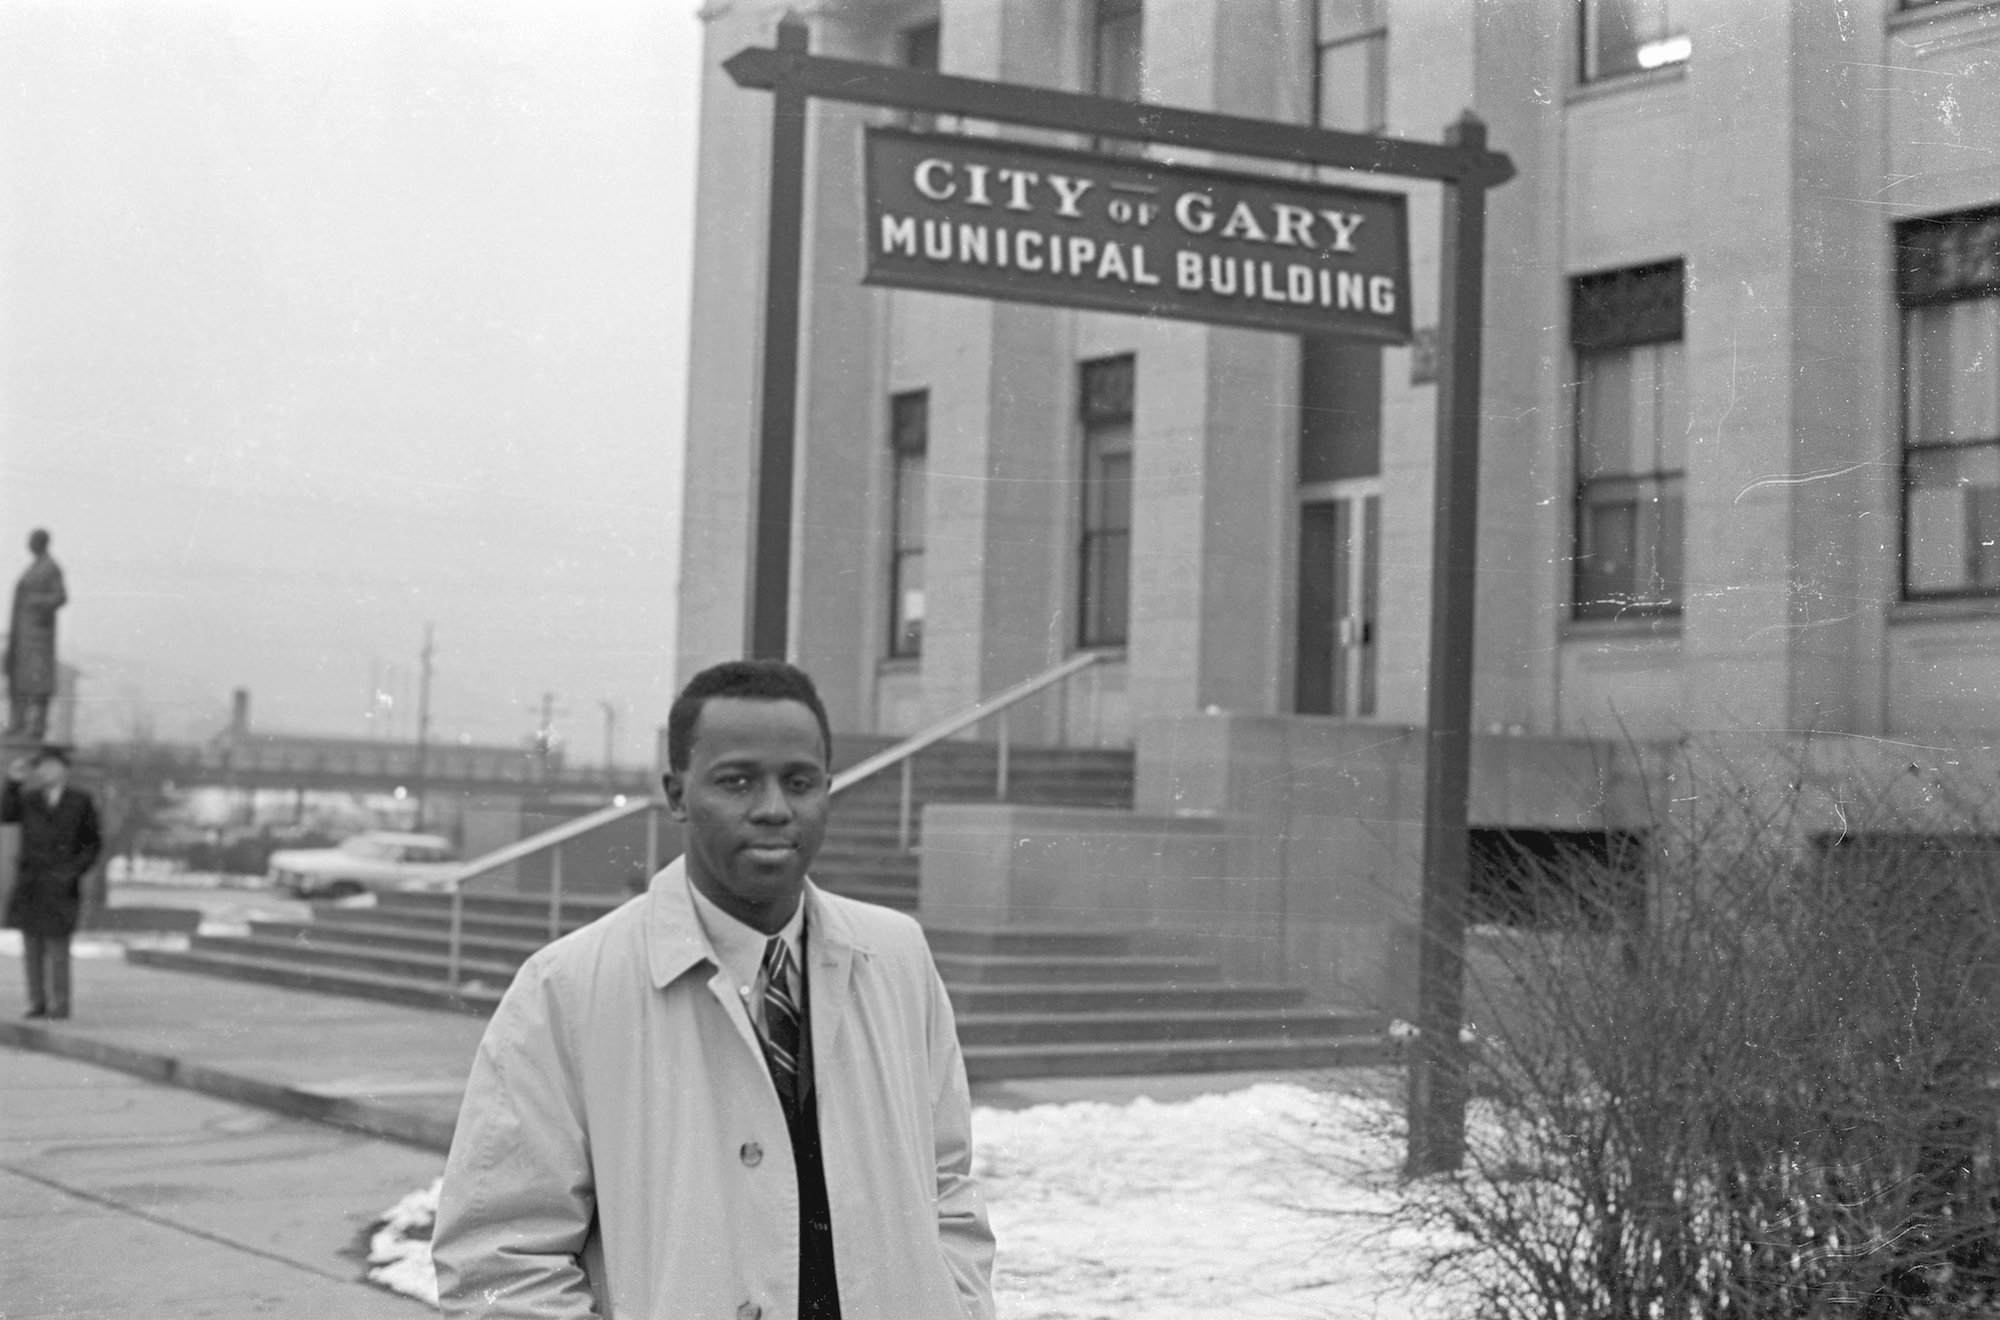 Mayor Richard G. Hatcher Standing in Front of Municipal Building